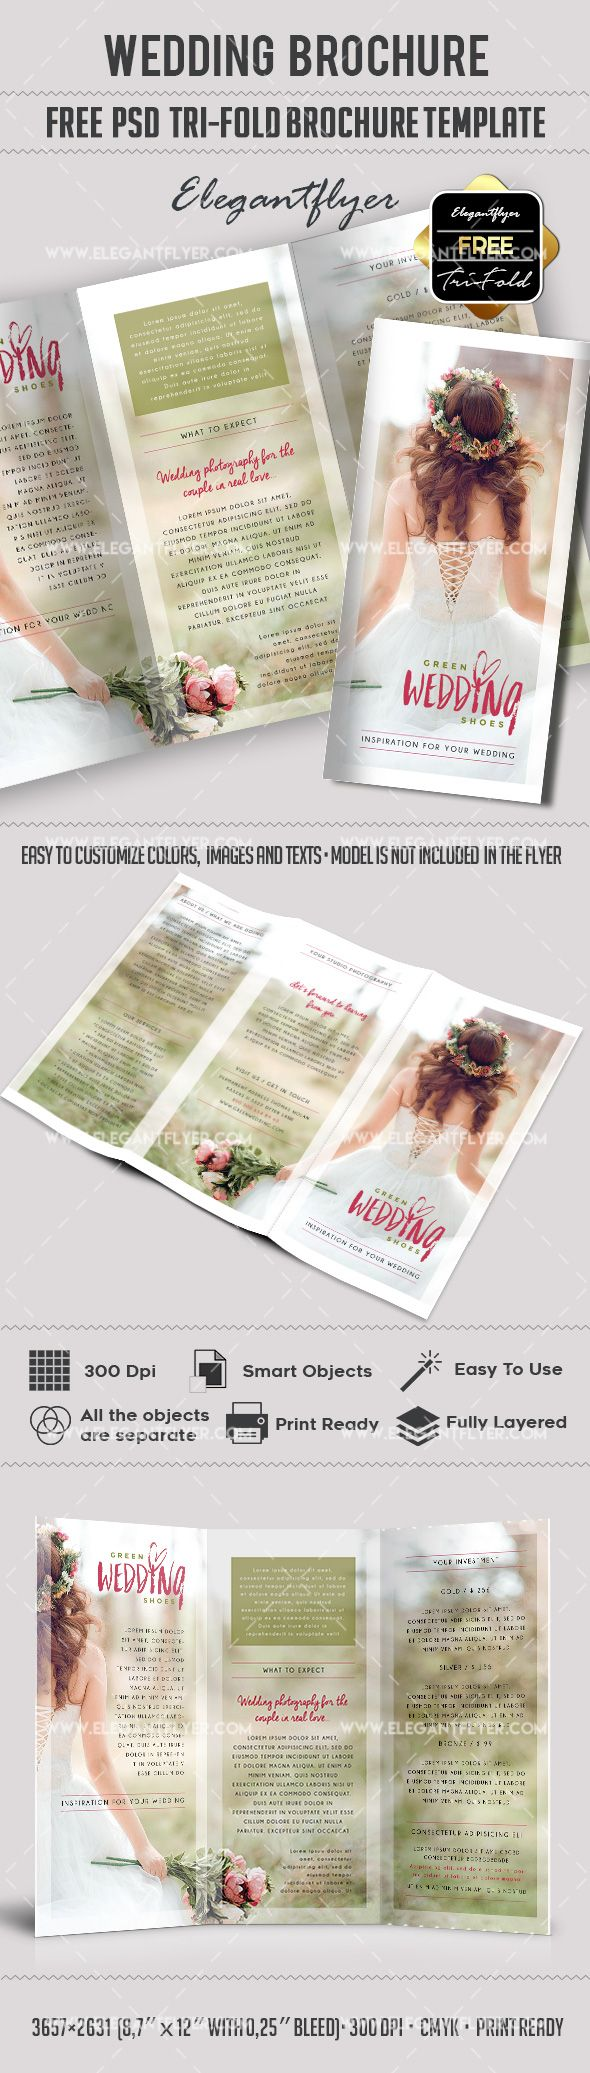 Best Free Brochure Templates Images On Pinterest Brochures - Wedding brochures templates free